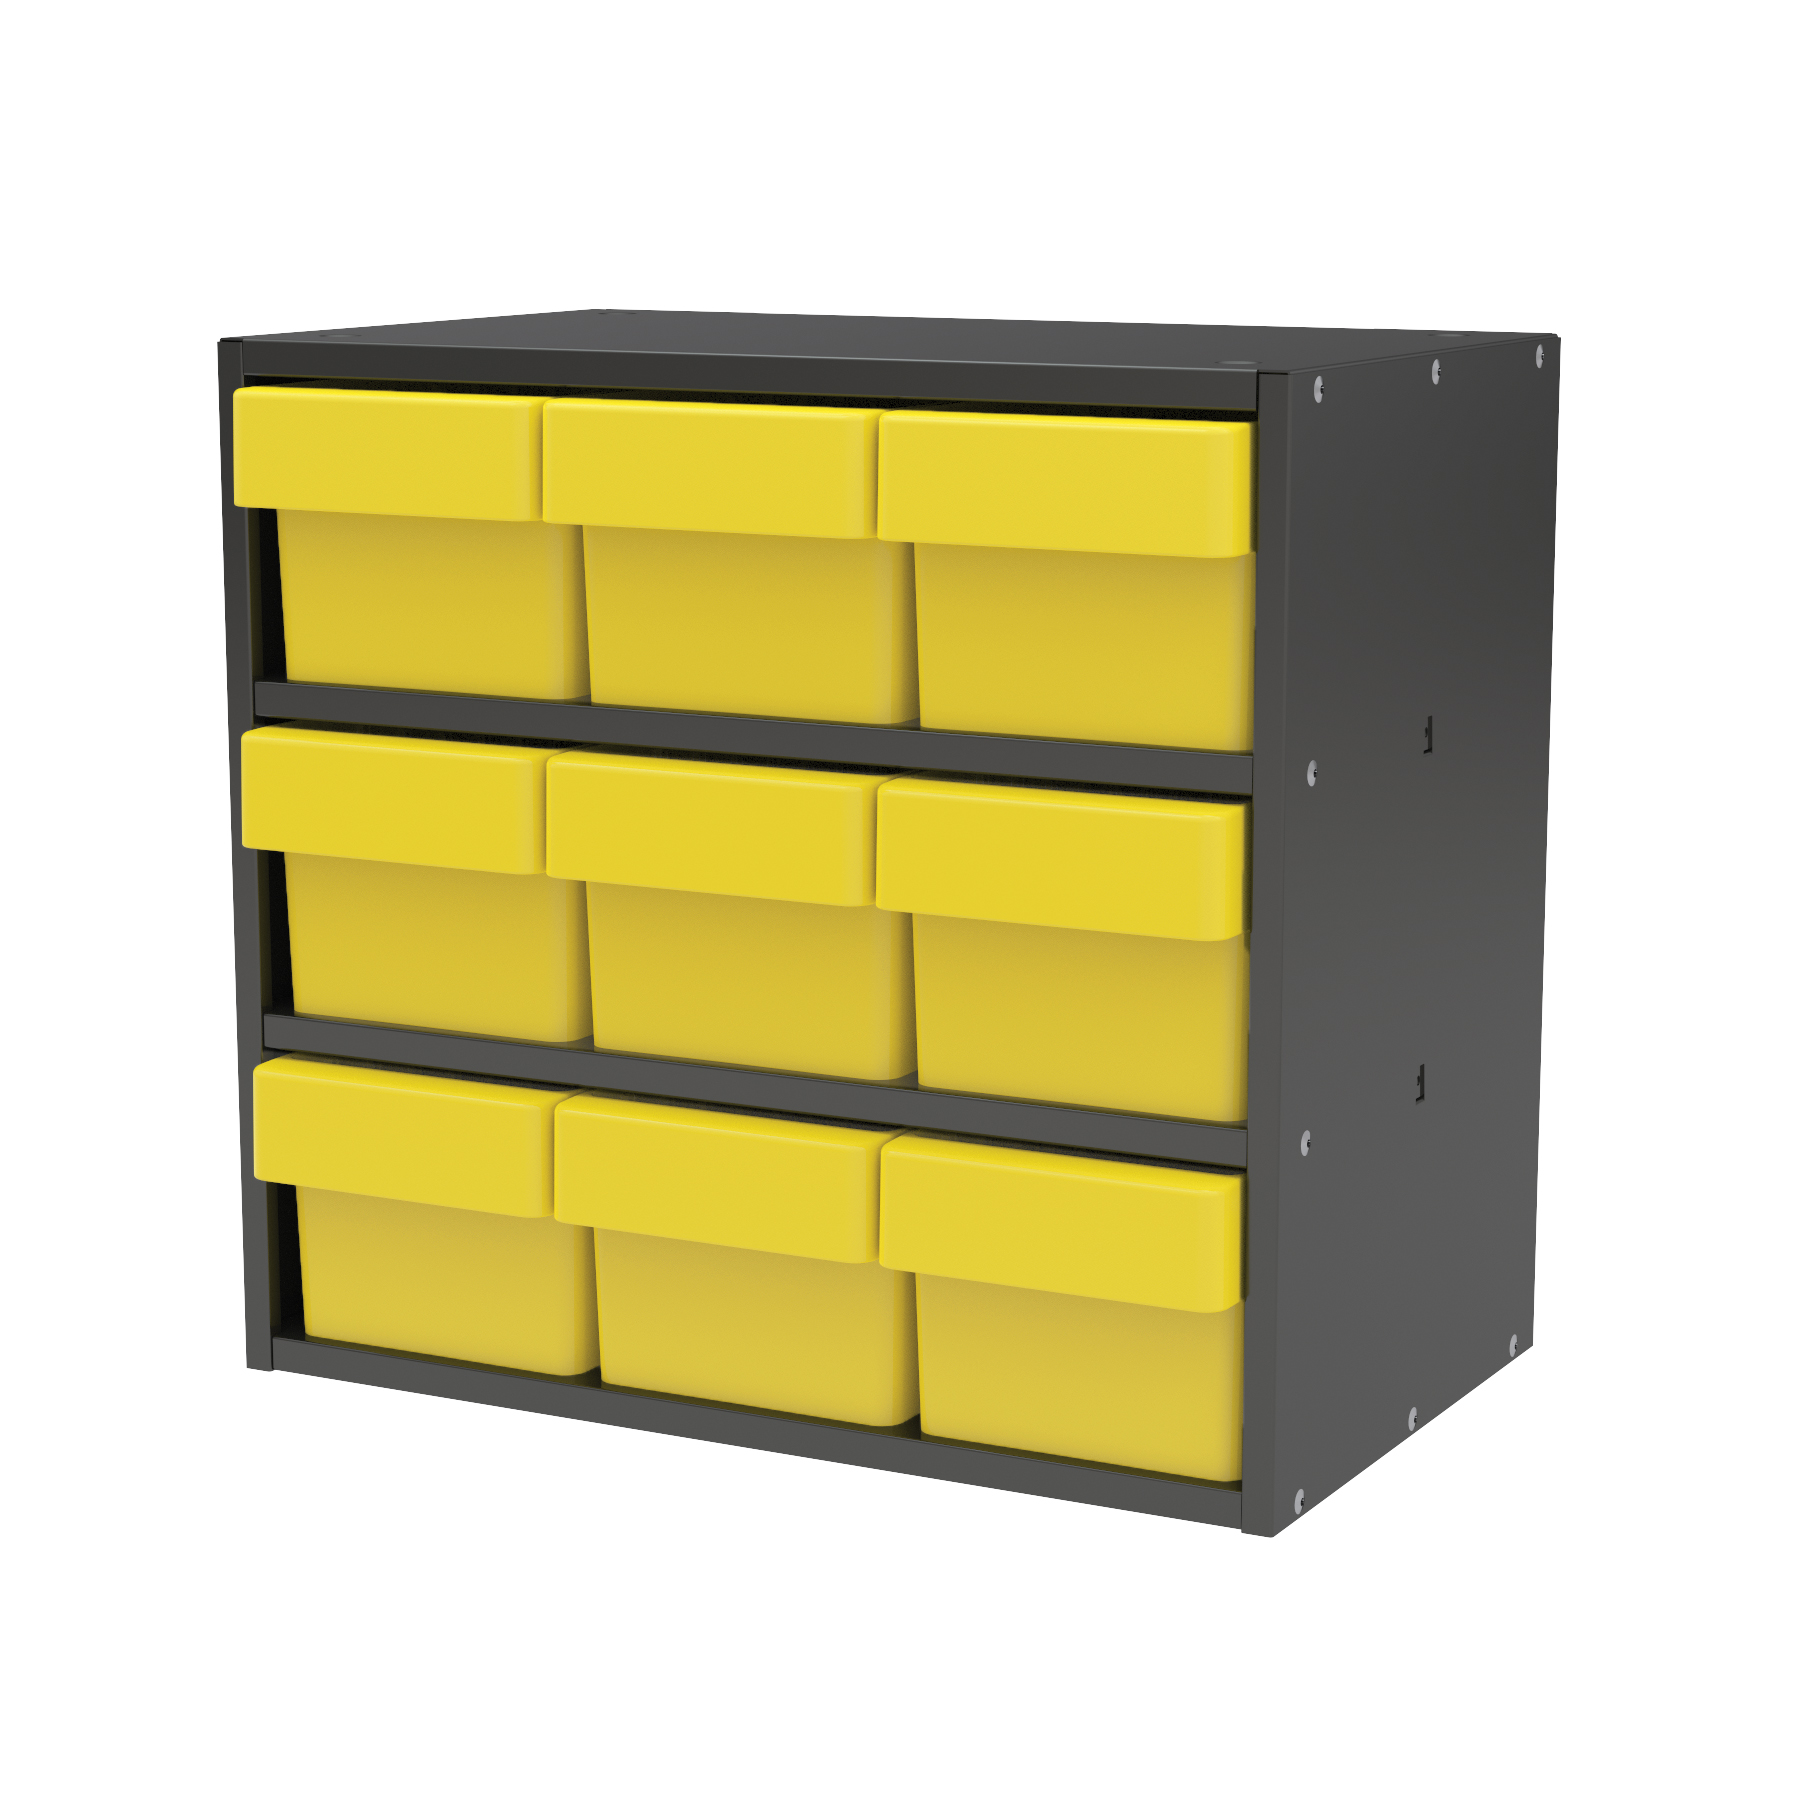 Item DISCONTINUED by Manufacturer.  Modular Cabinet, 18x11x16, 9 Drawers, Gray/Yellow (AD1811C62YEL).  This item sold in carton quantities of 1.